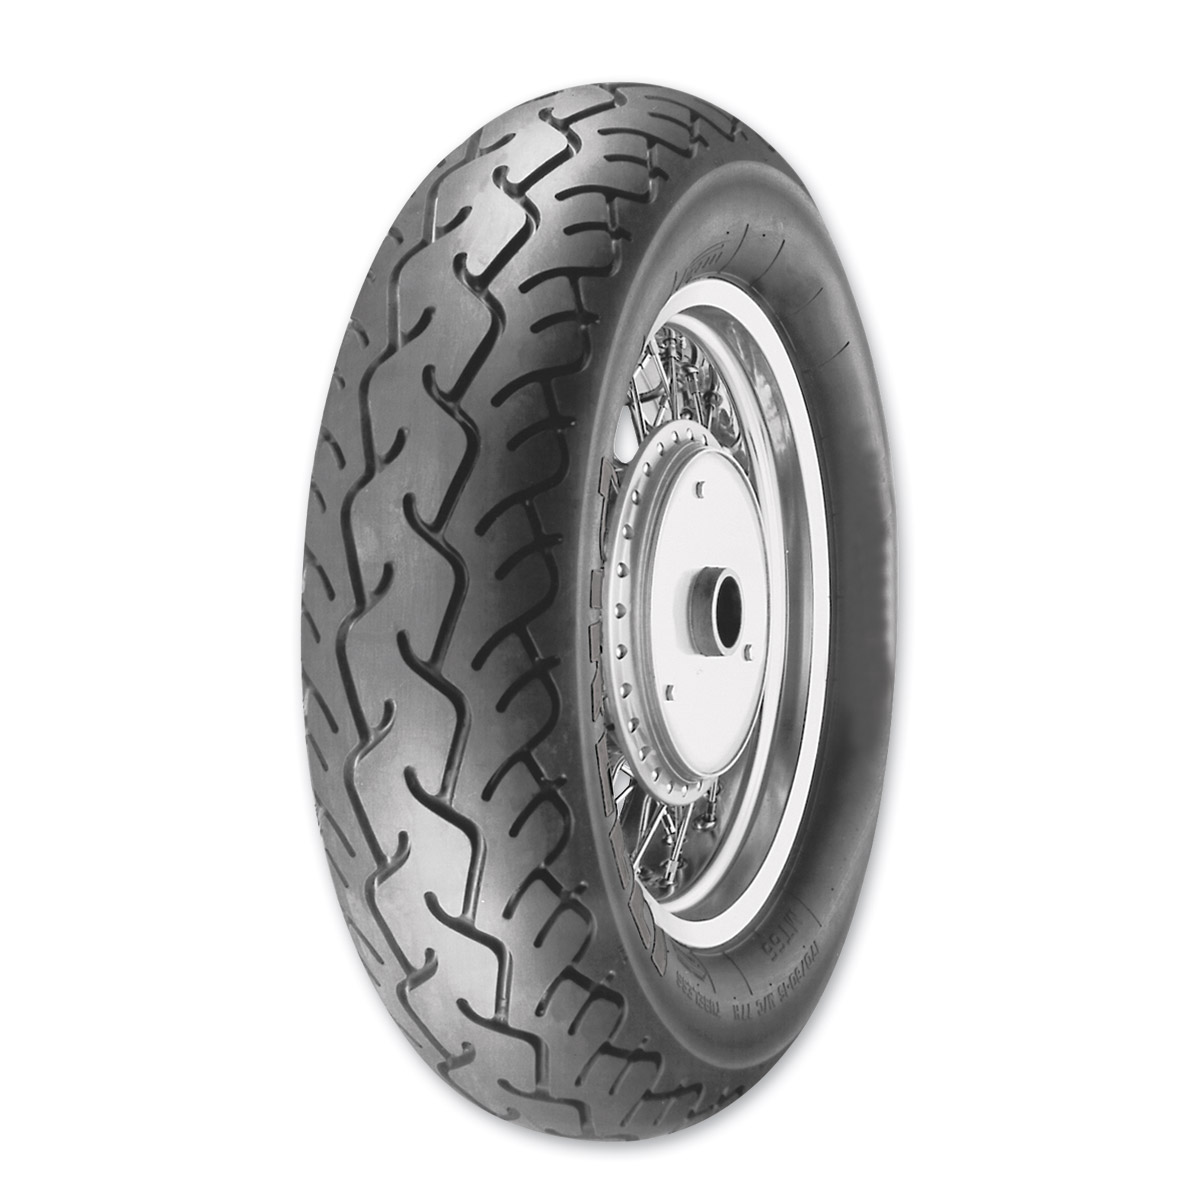 Pirelli MT66 Route 150/80-16 Rear Tire